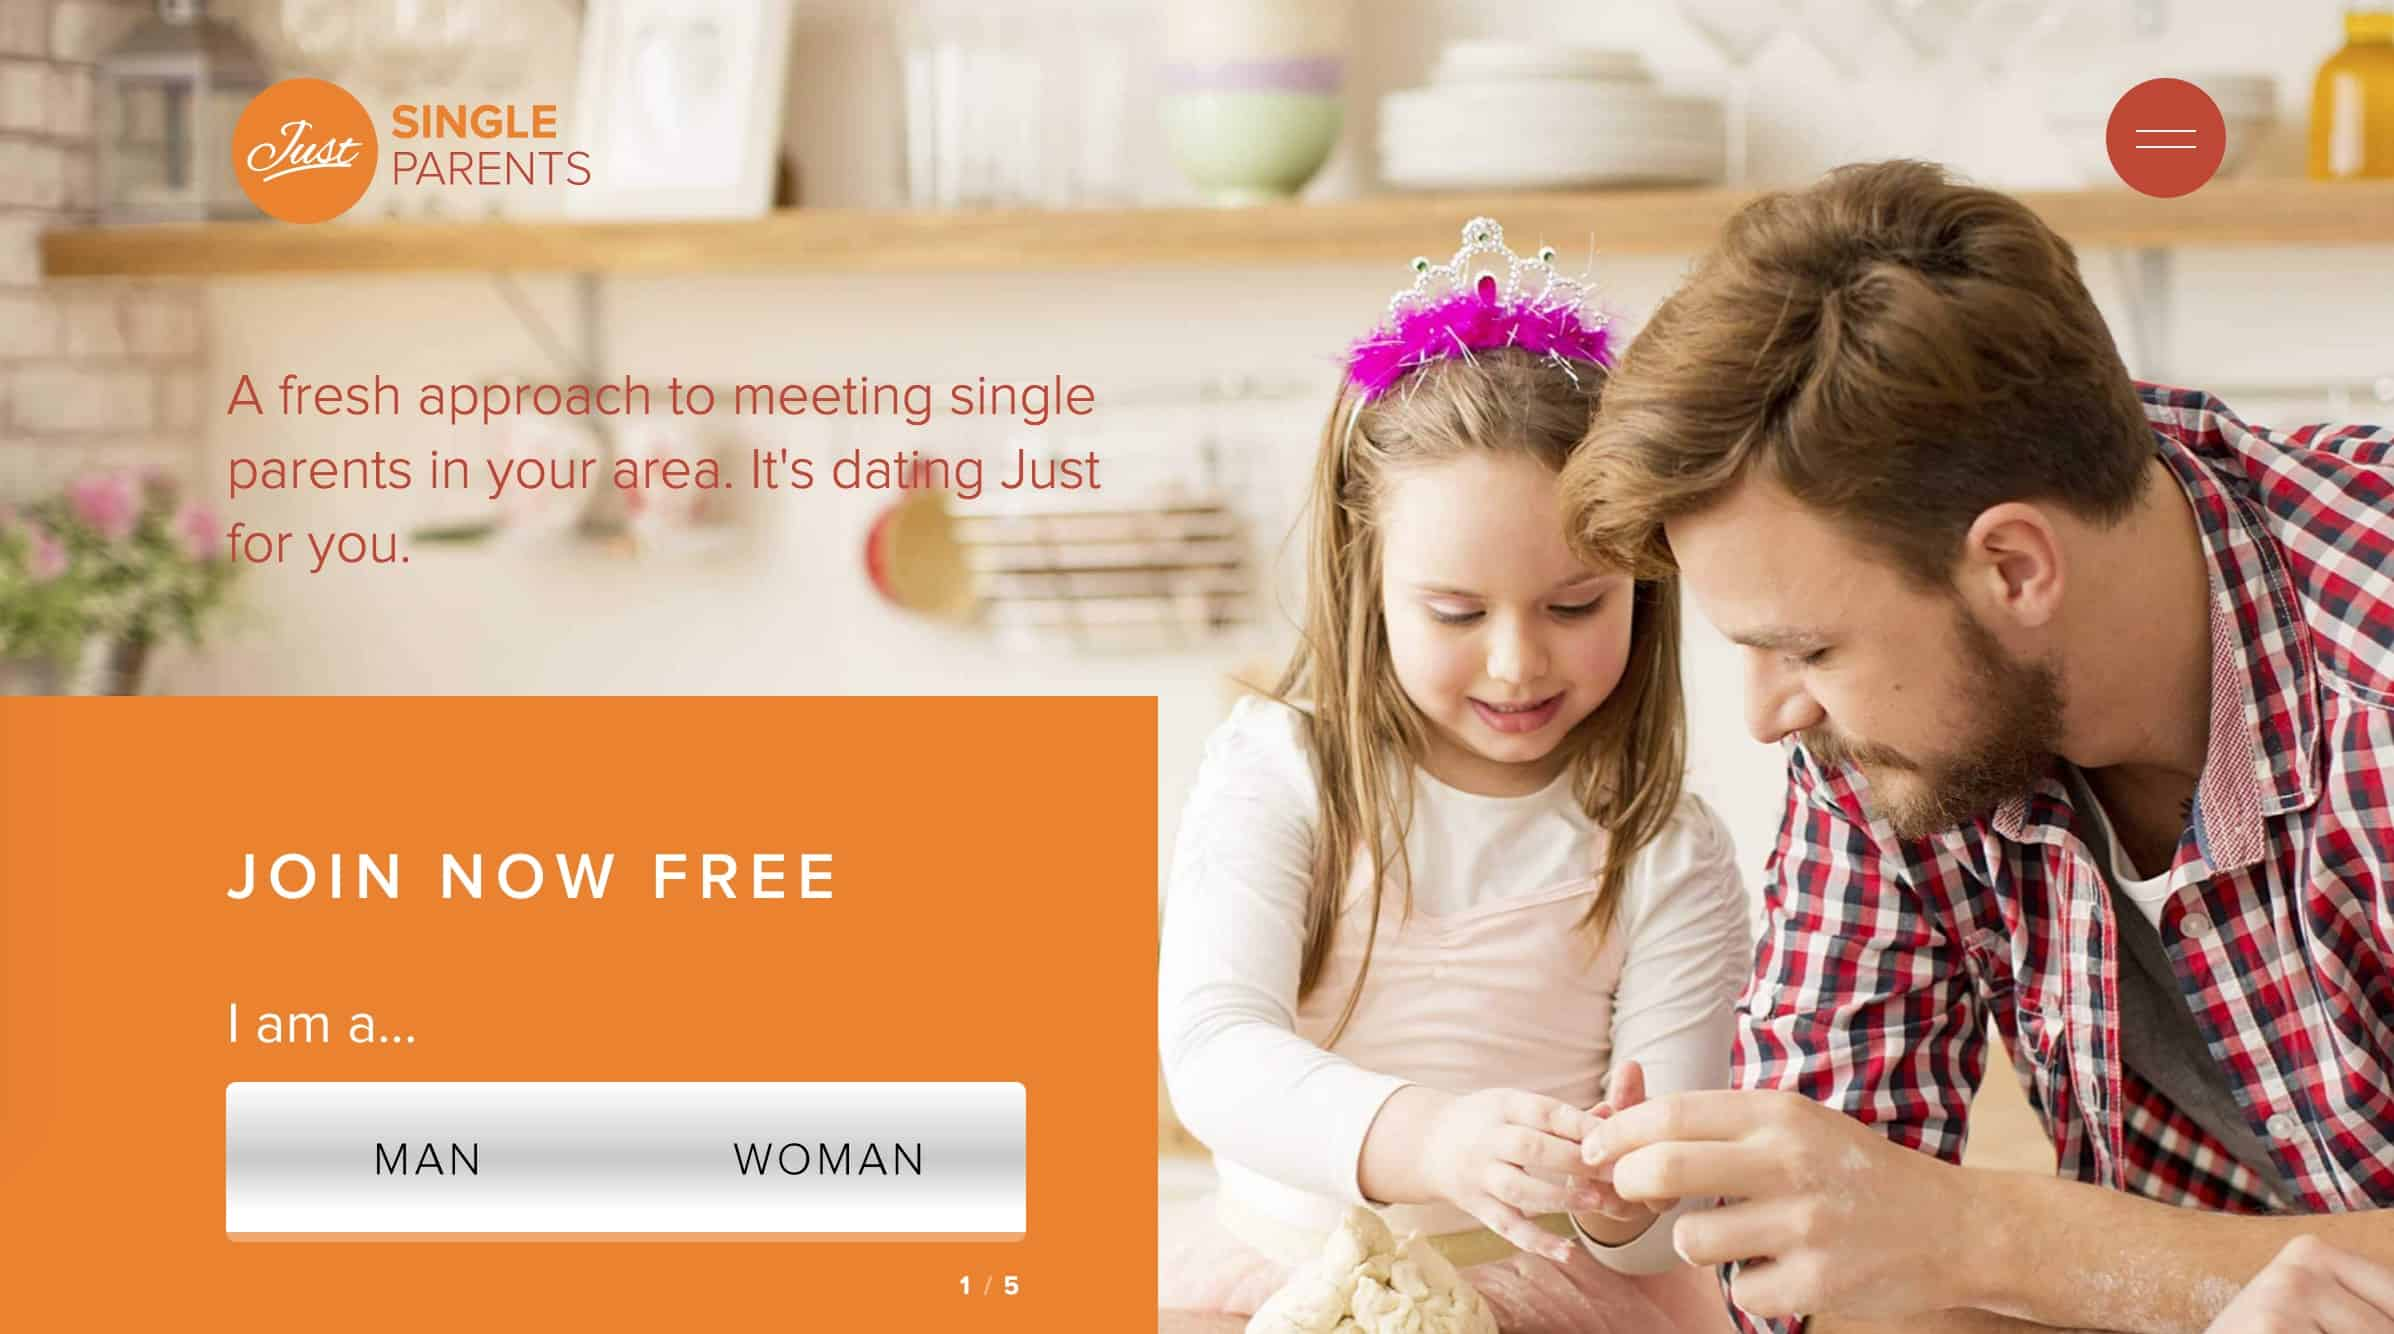 gilbertsville single parent personals Single parent personals - visit the most popular and simplest online dating site to flirt, chart, or date with interesting people online, sign up for free.